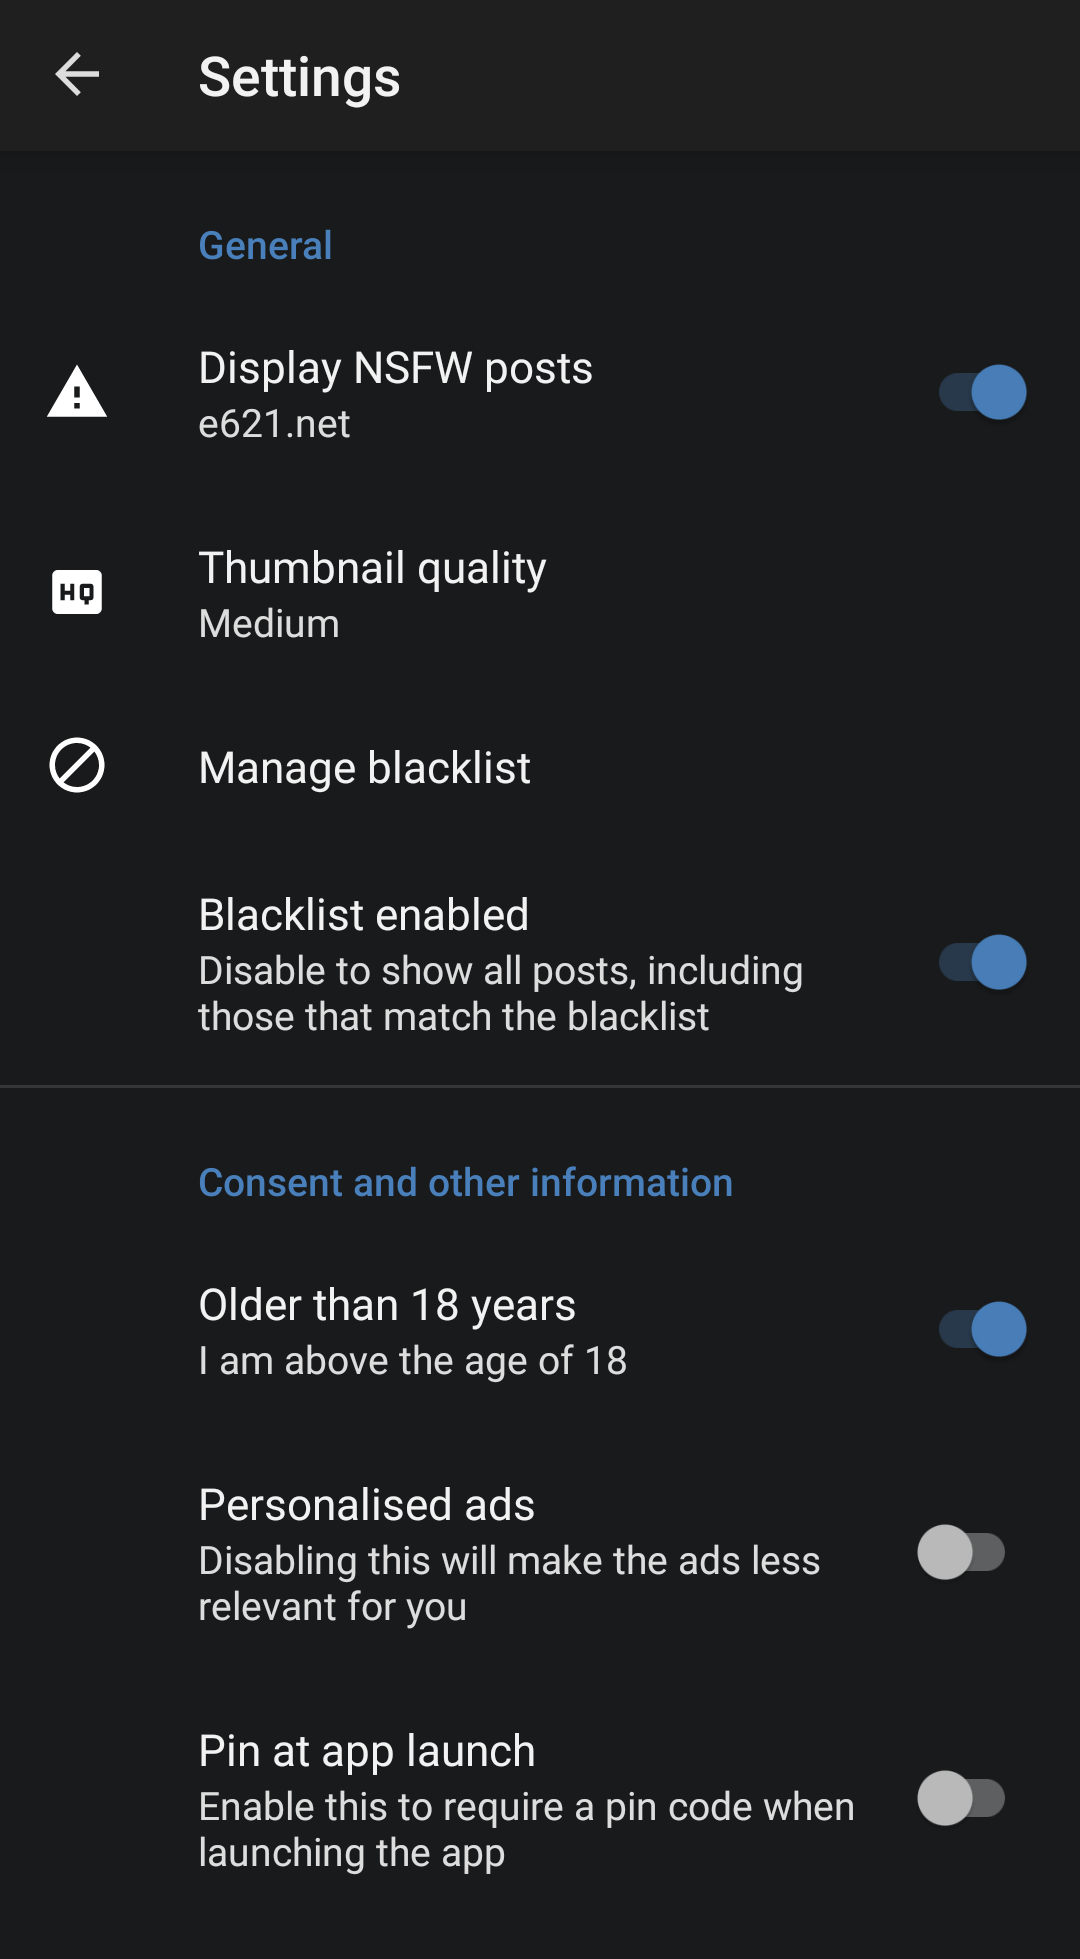 Many settings to customise the app